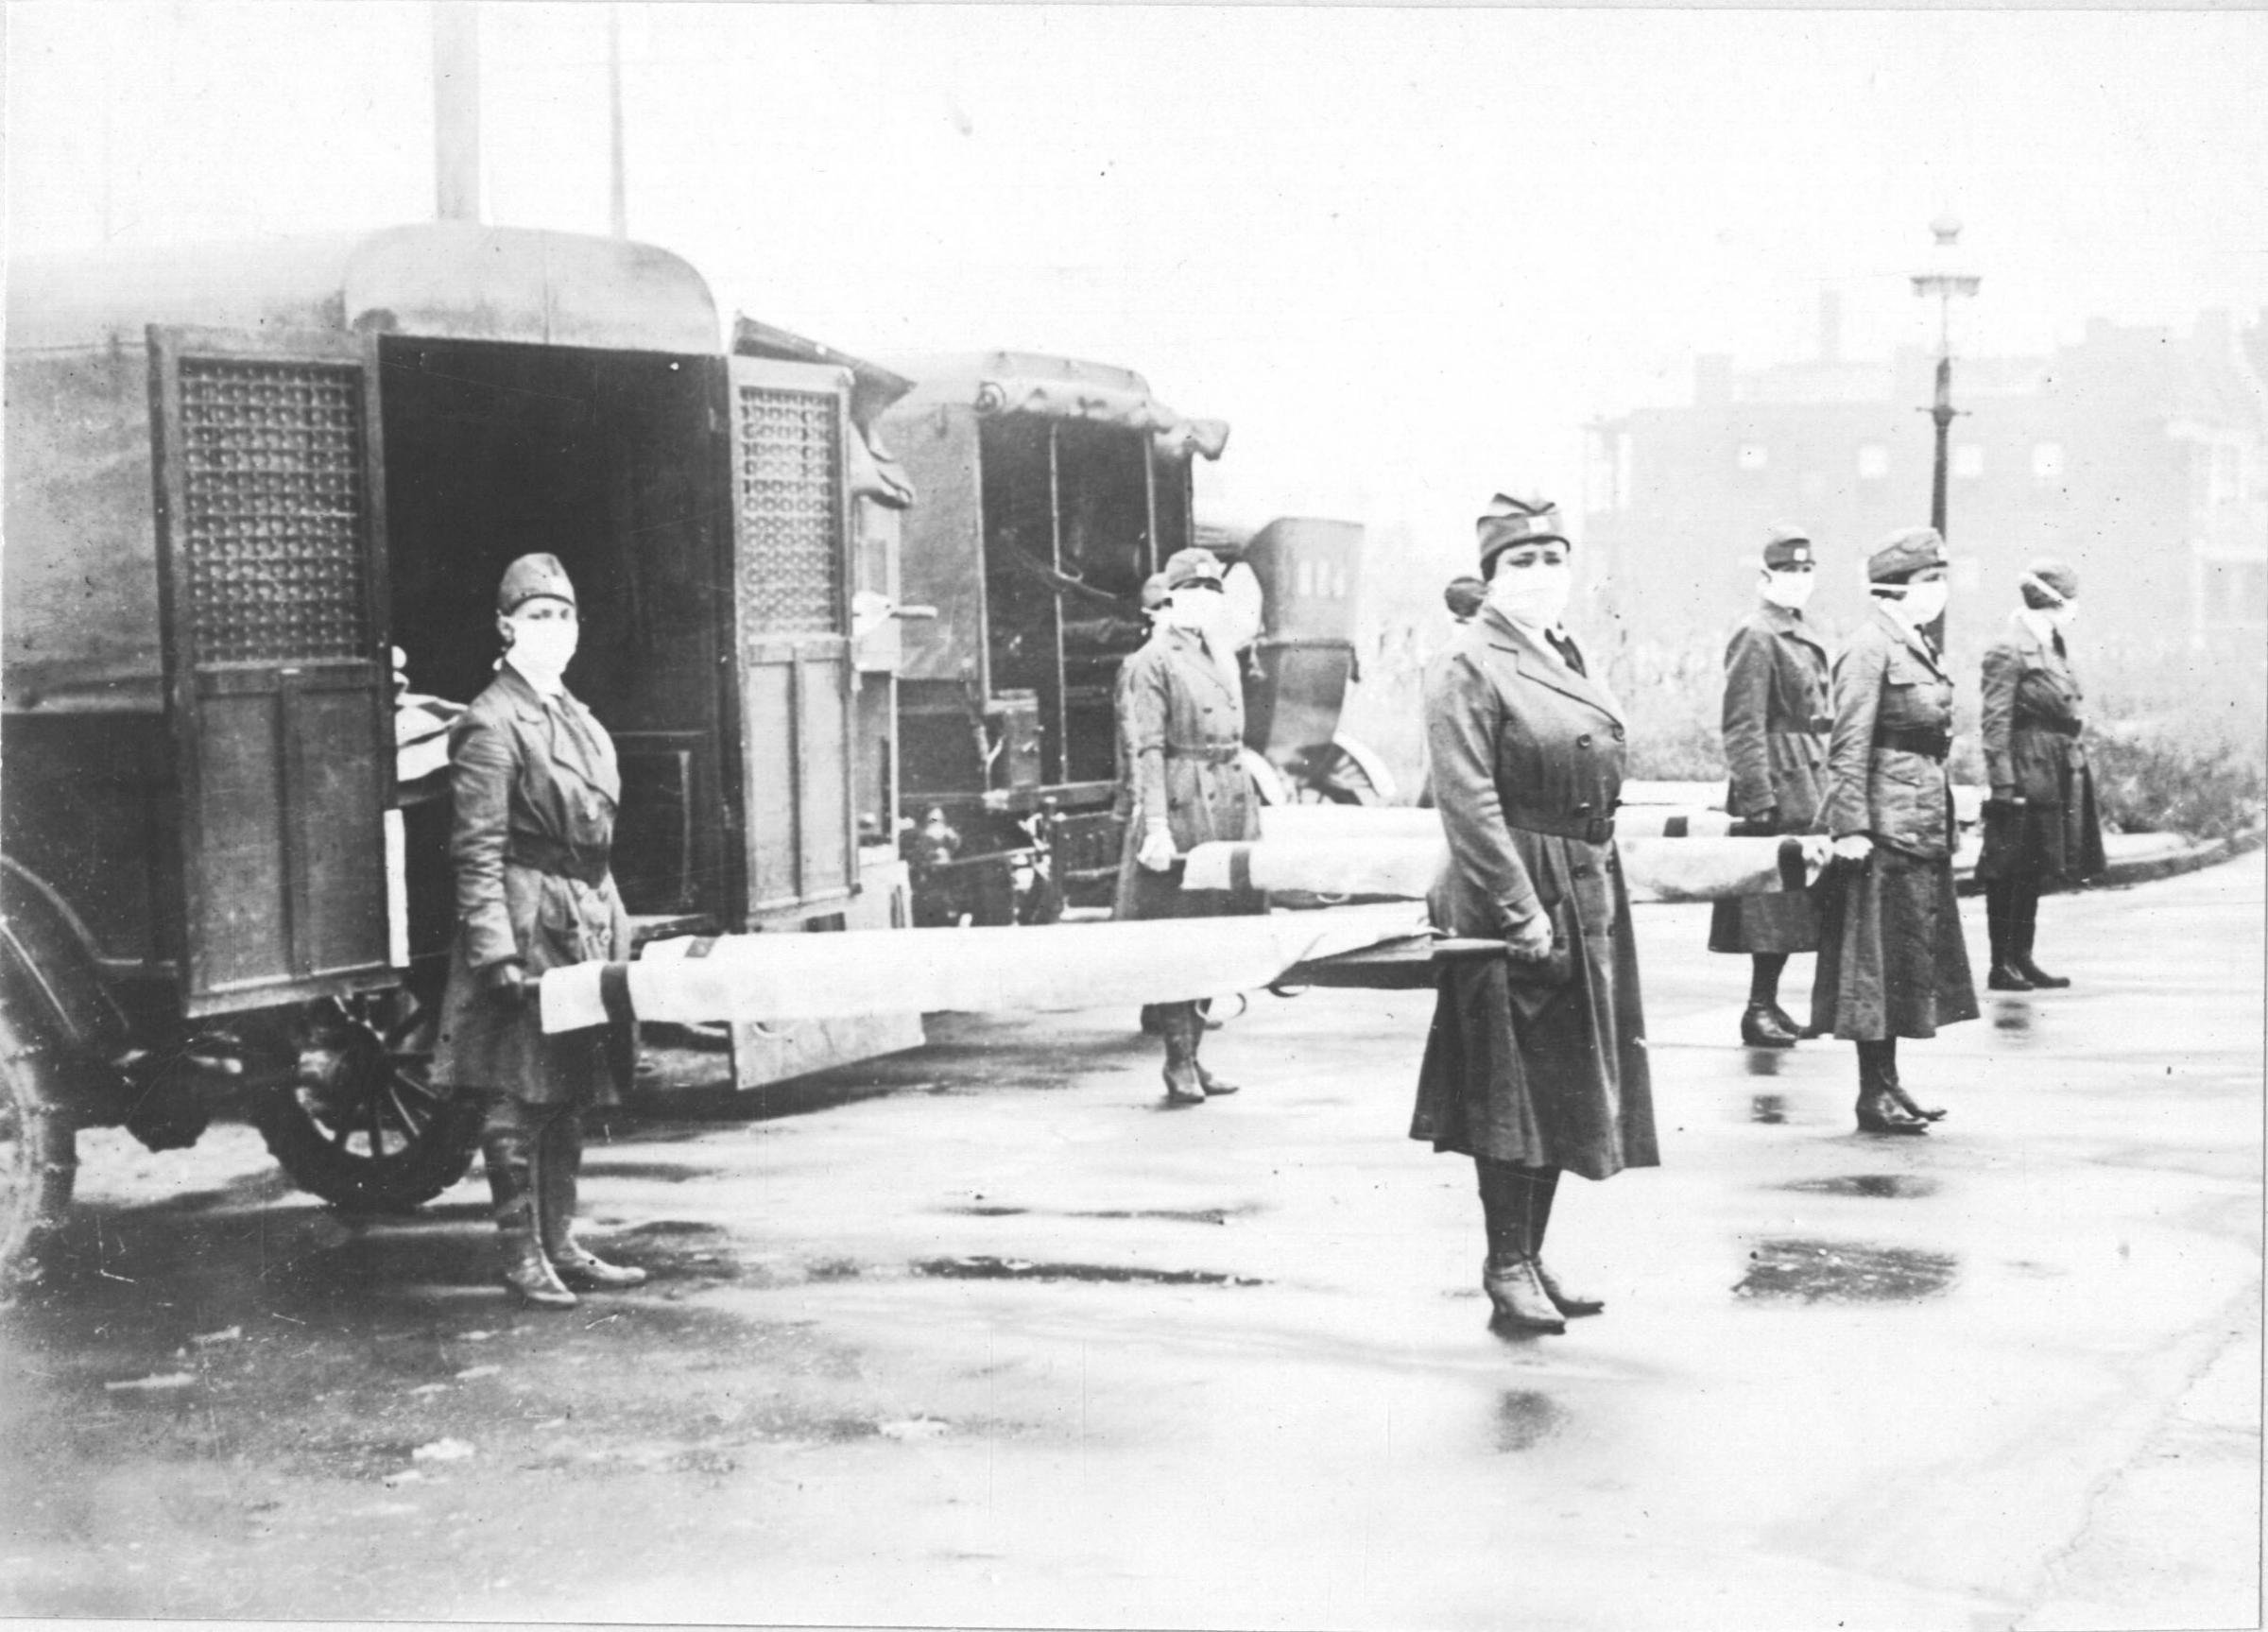 Programme Name: The Flu That Killed 50 Million - TX: n/a - Episode: The Flu That Killed 50 Million (No. n/a) - Picture Shows: Ambulance and nurses